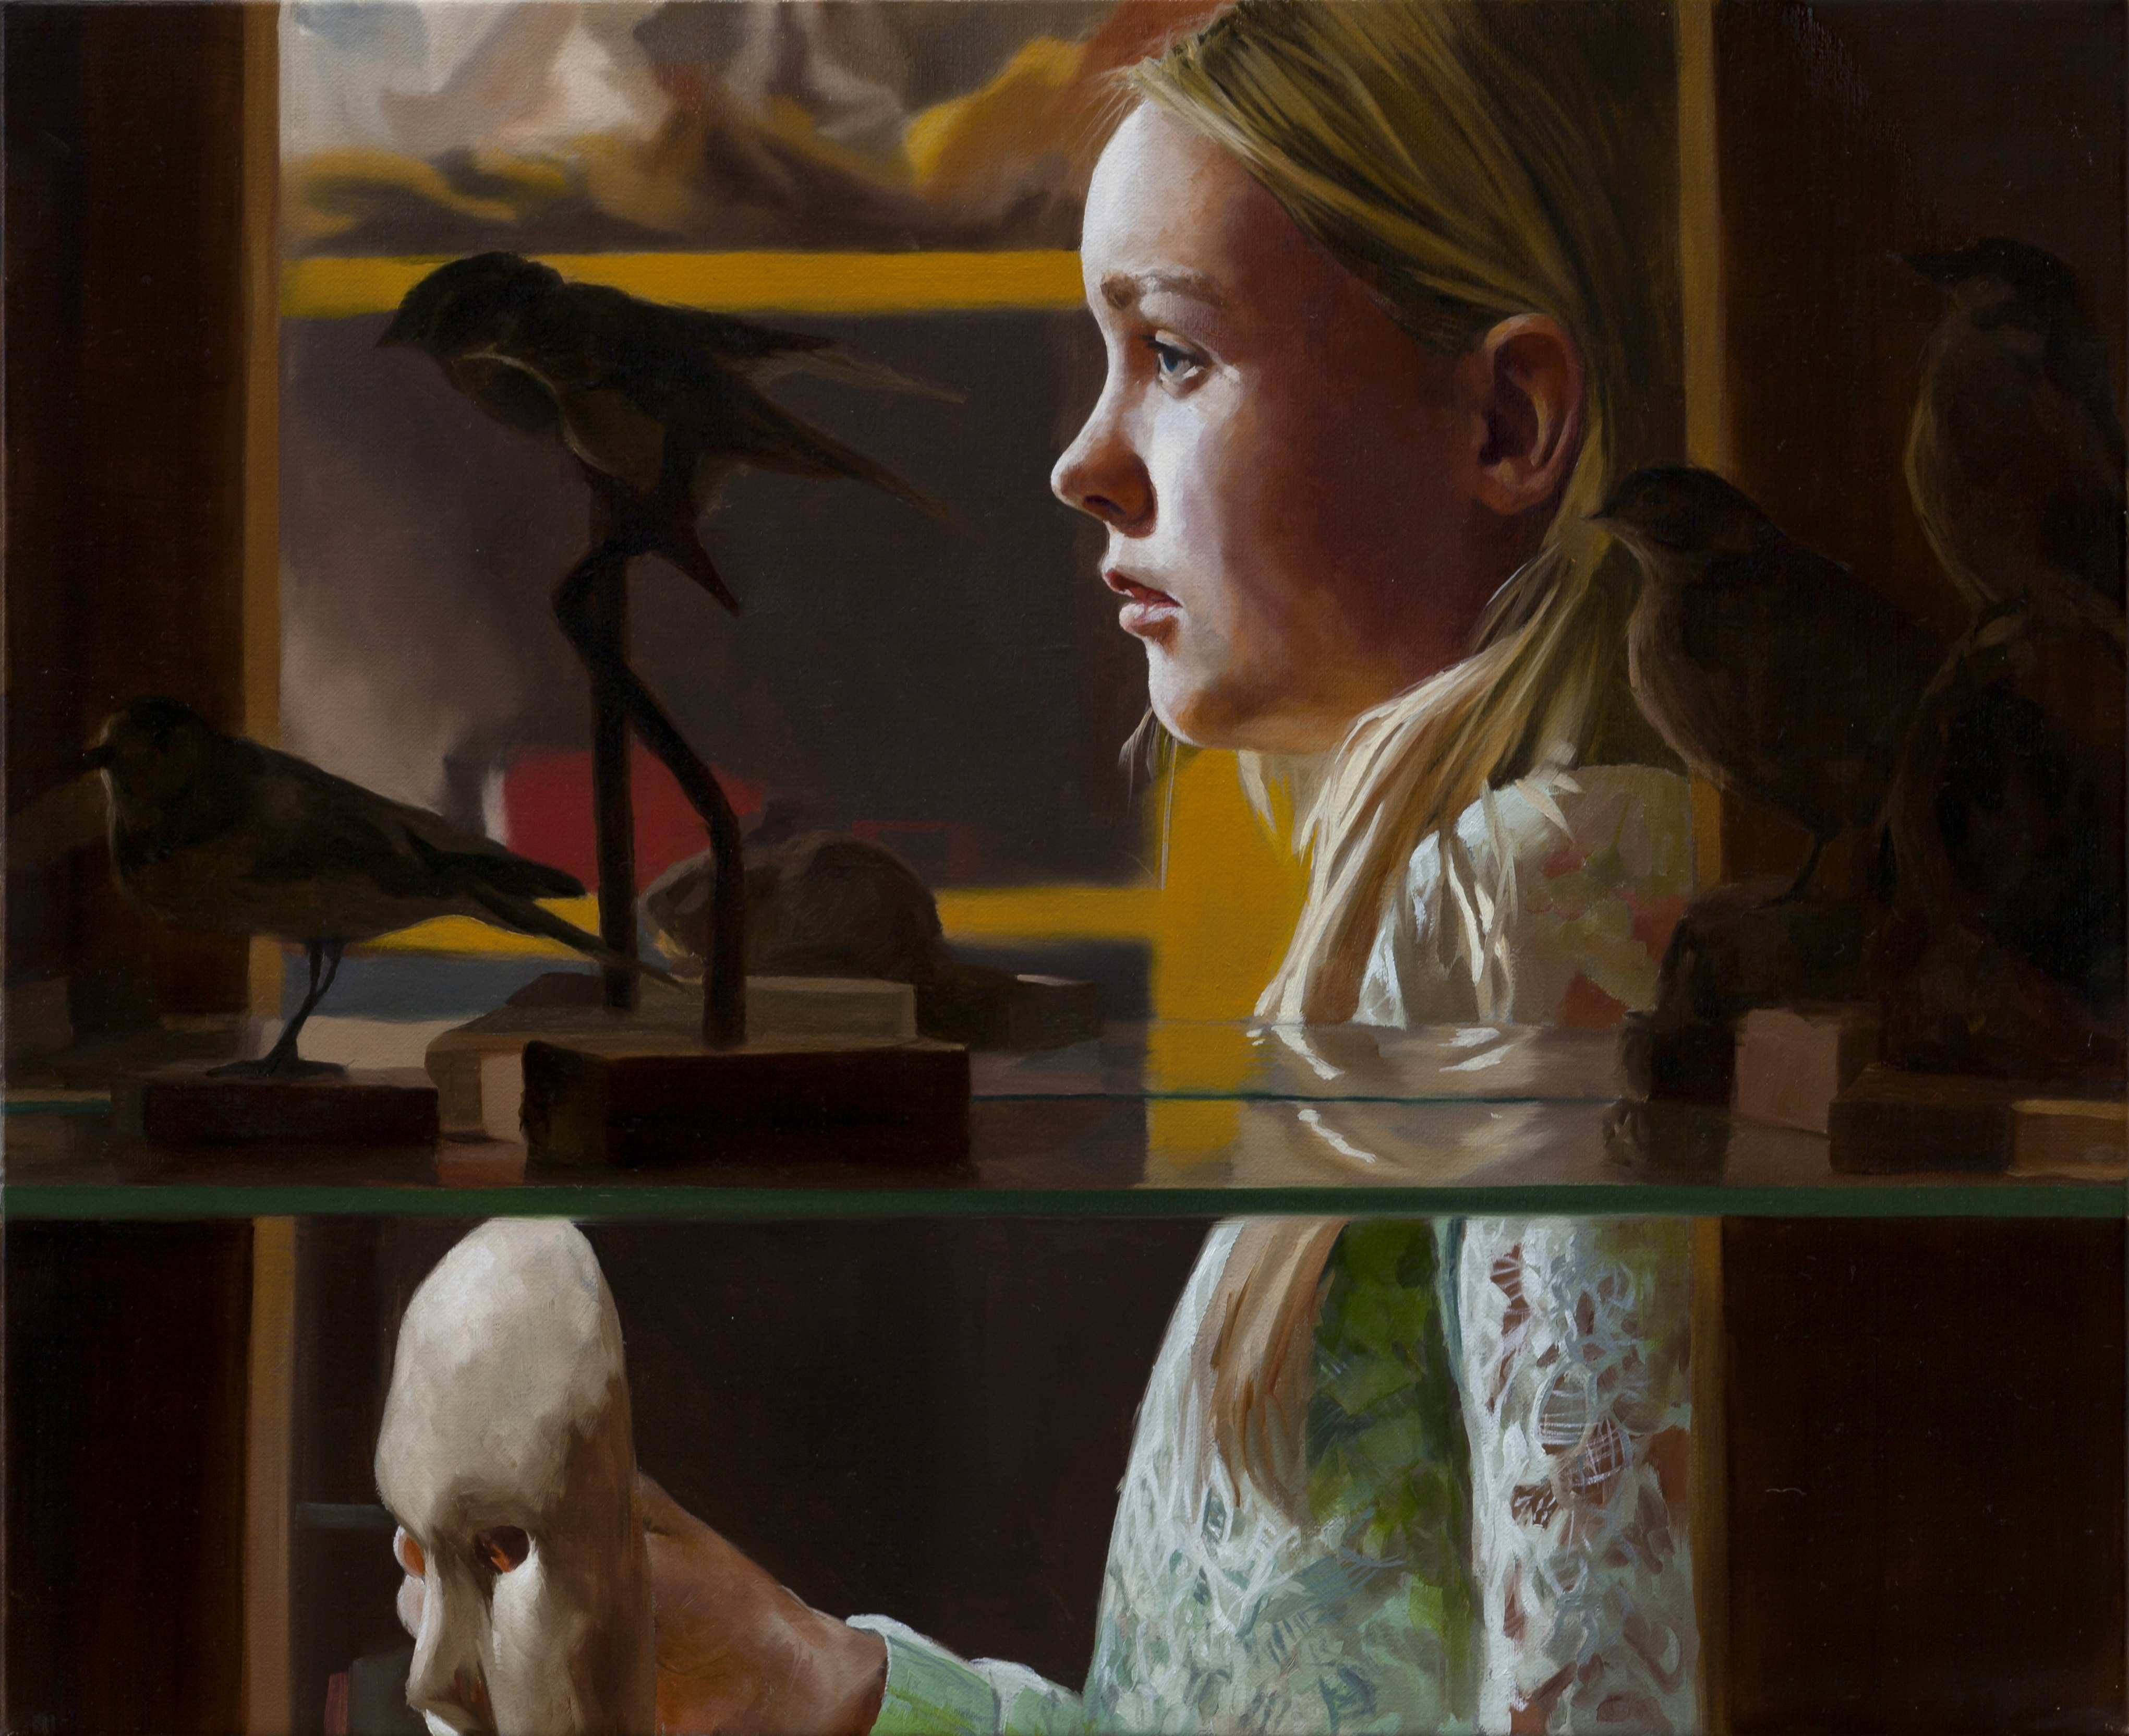 The-Mask-Girl-behind-the-cabinet-2015-Markus-Akesson-oil-on-canvas-38x46cm